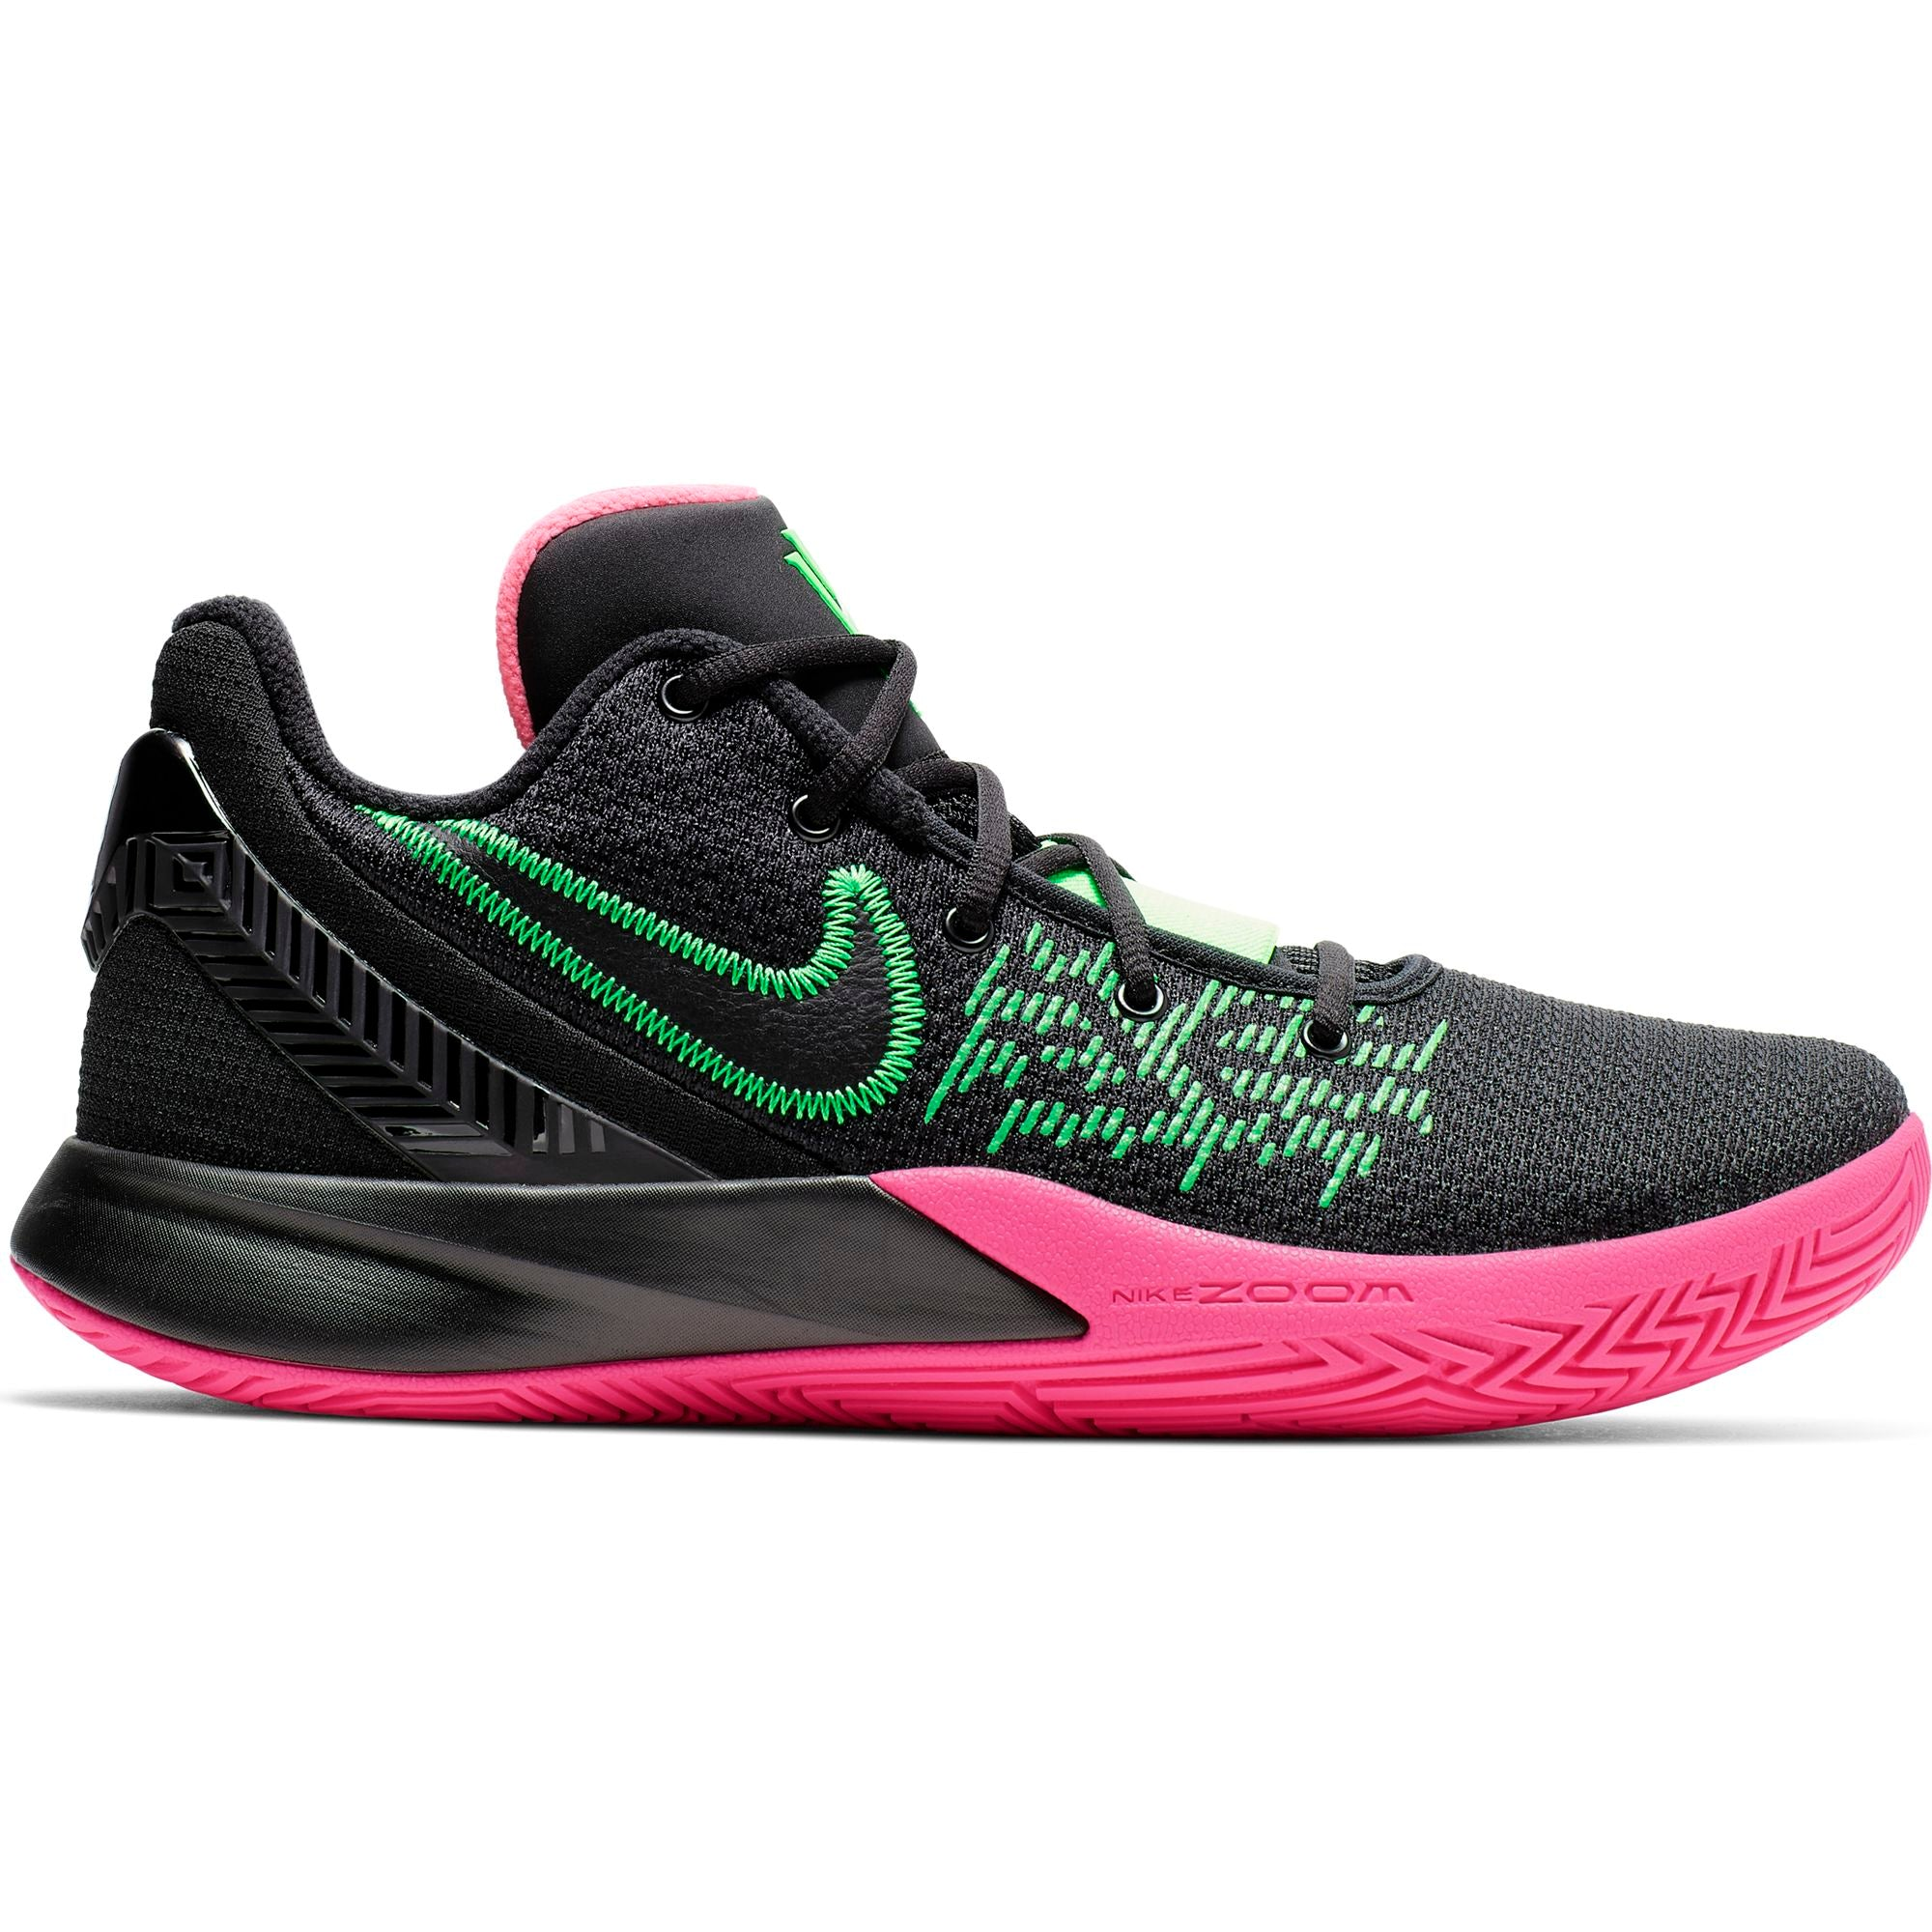 Nike Kyrie Flytrap II  Basketball Boot/Shoe - Black/Hyper Pink/Rage Green